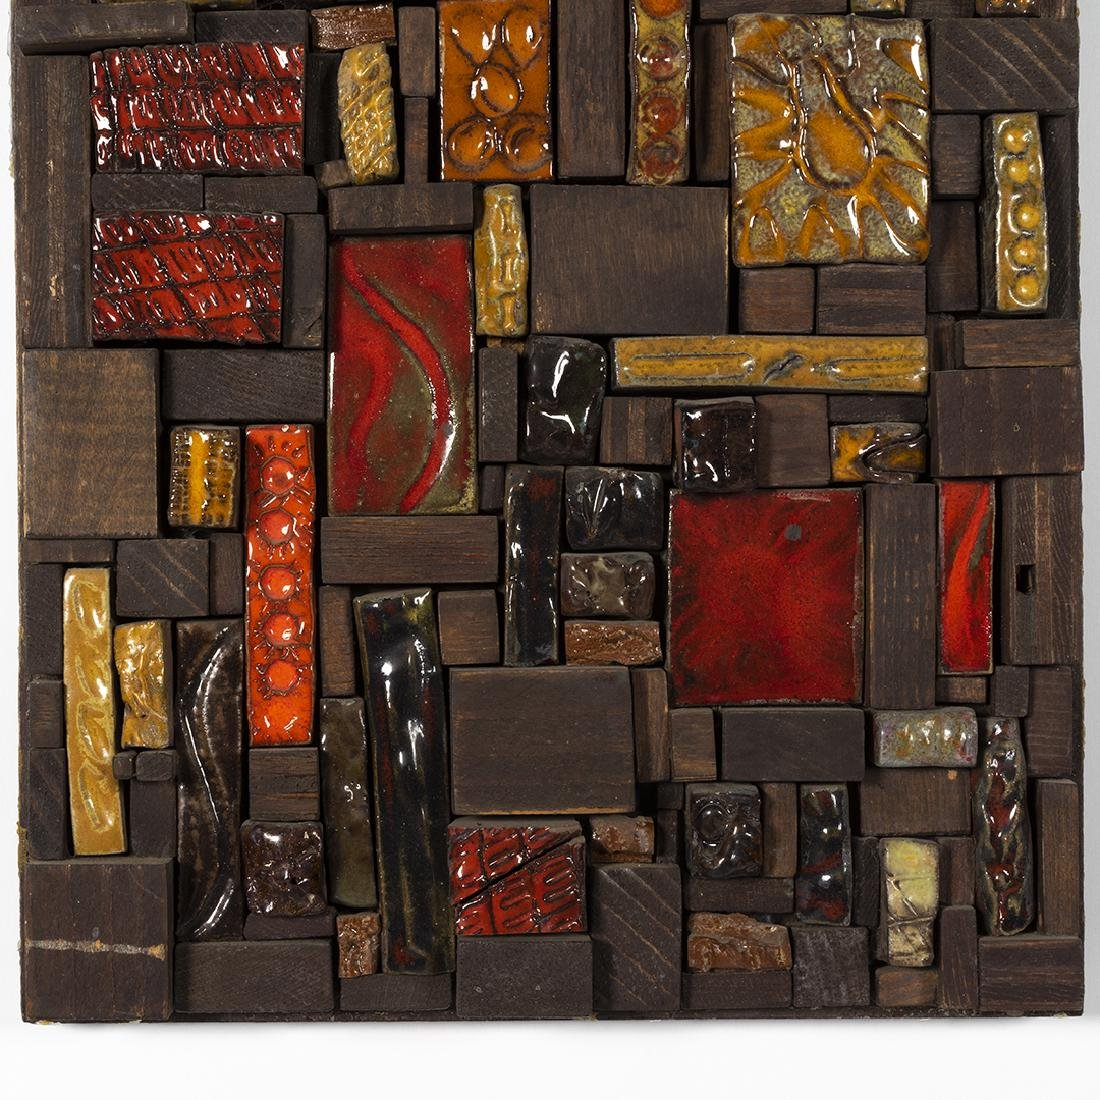 Mixed Media Assemblage - 3